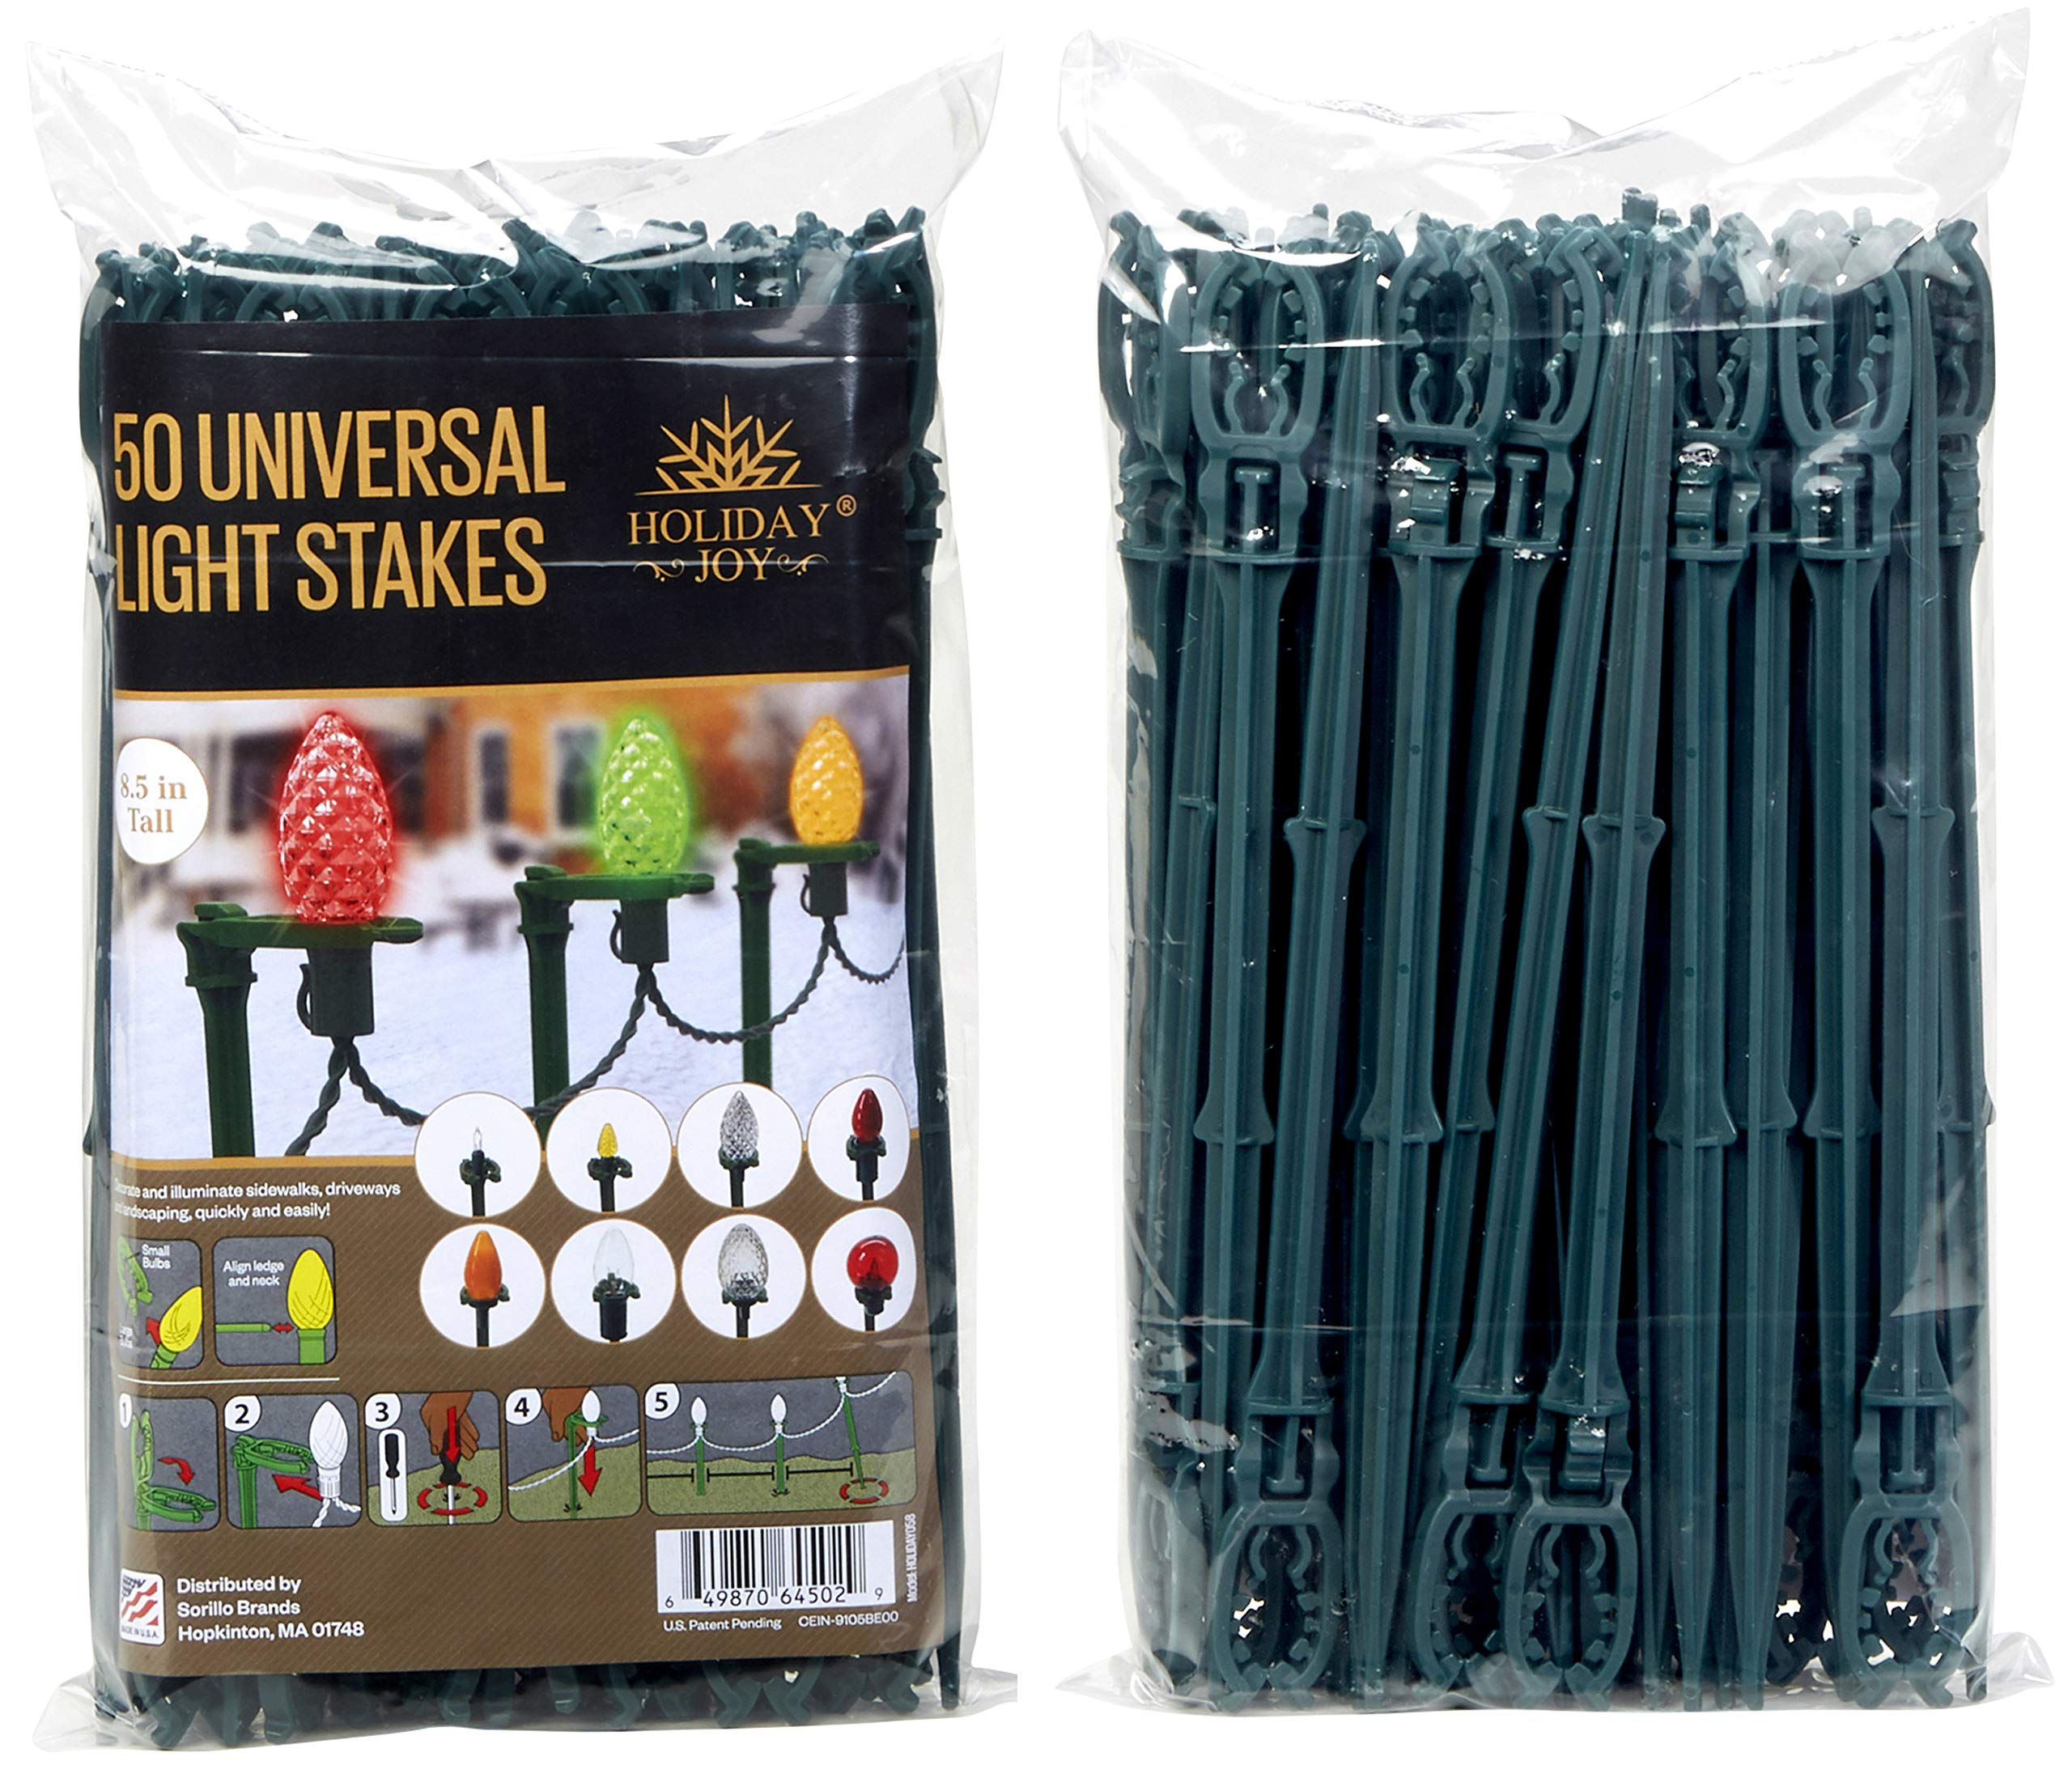 Holiday Joy - 50 Universal Light Stakes Holiday String Lights on Yards, Driveways & Pathways - 8.5'' Tall - New Improved Model